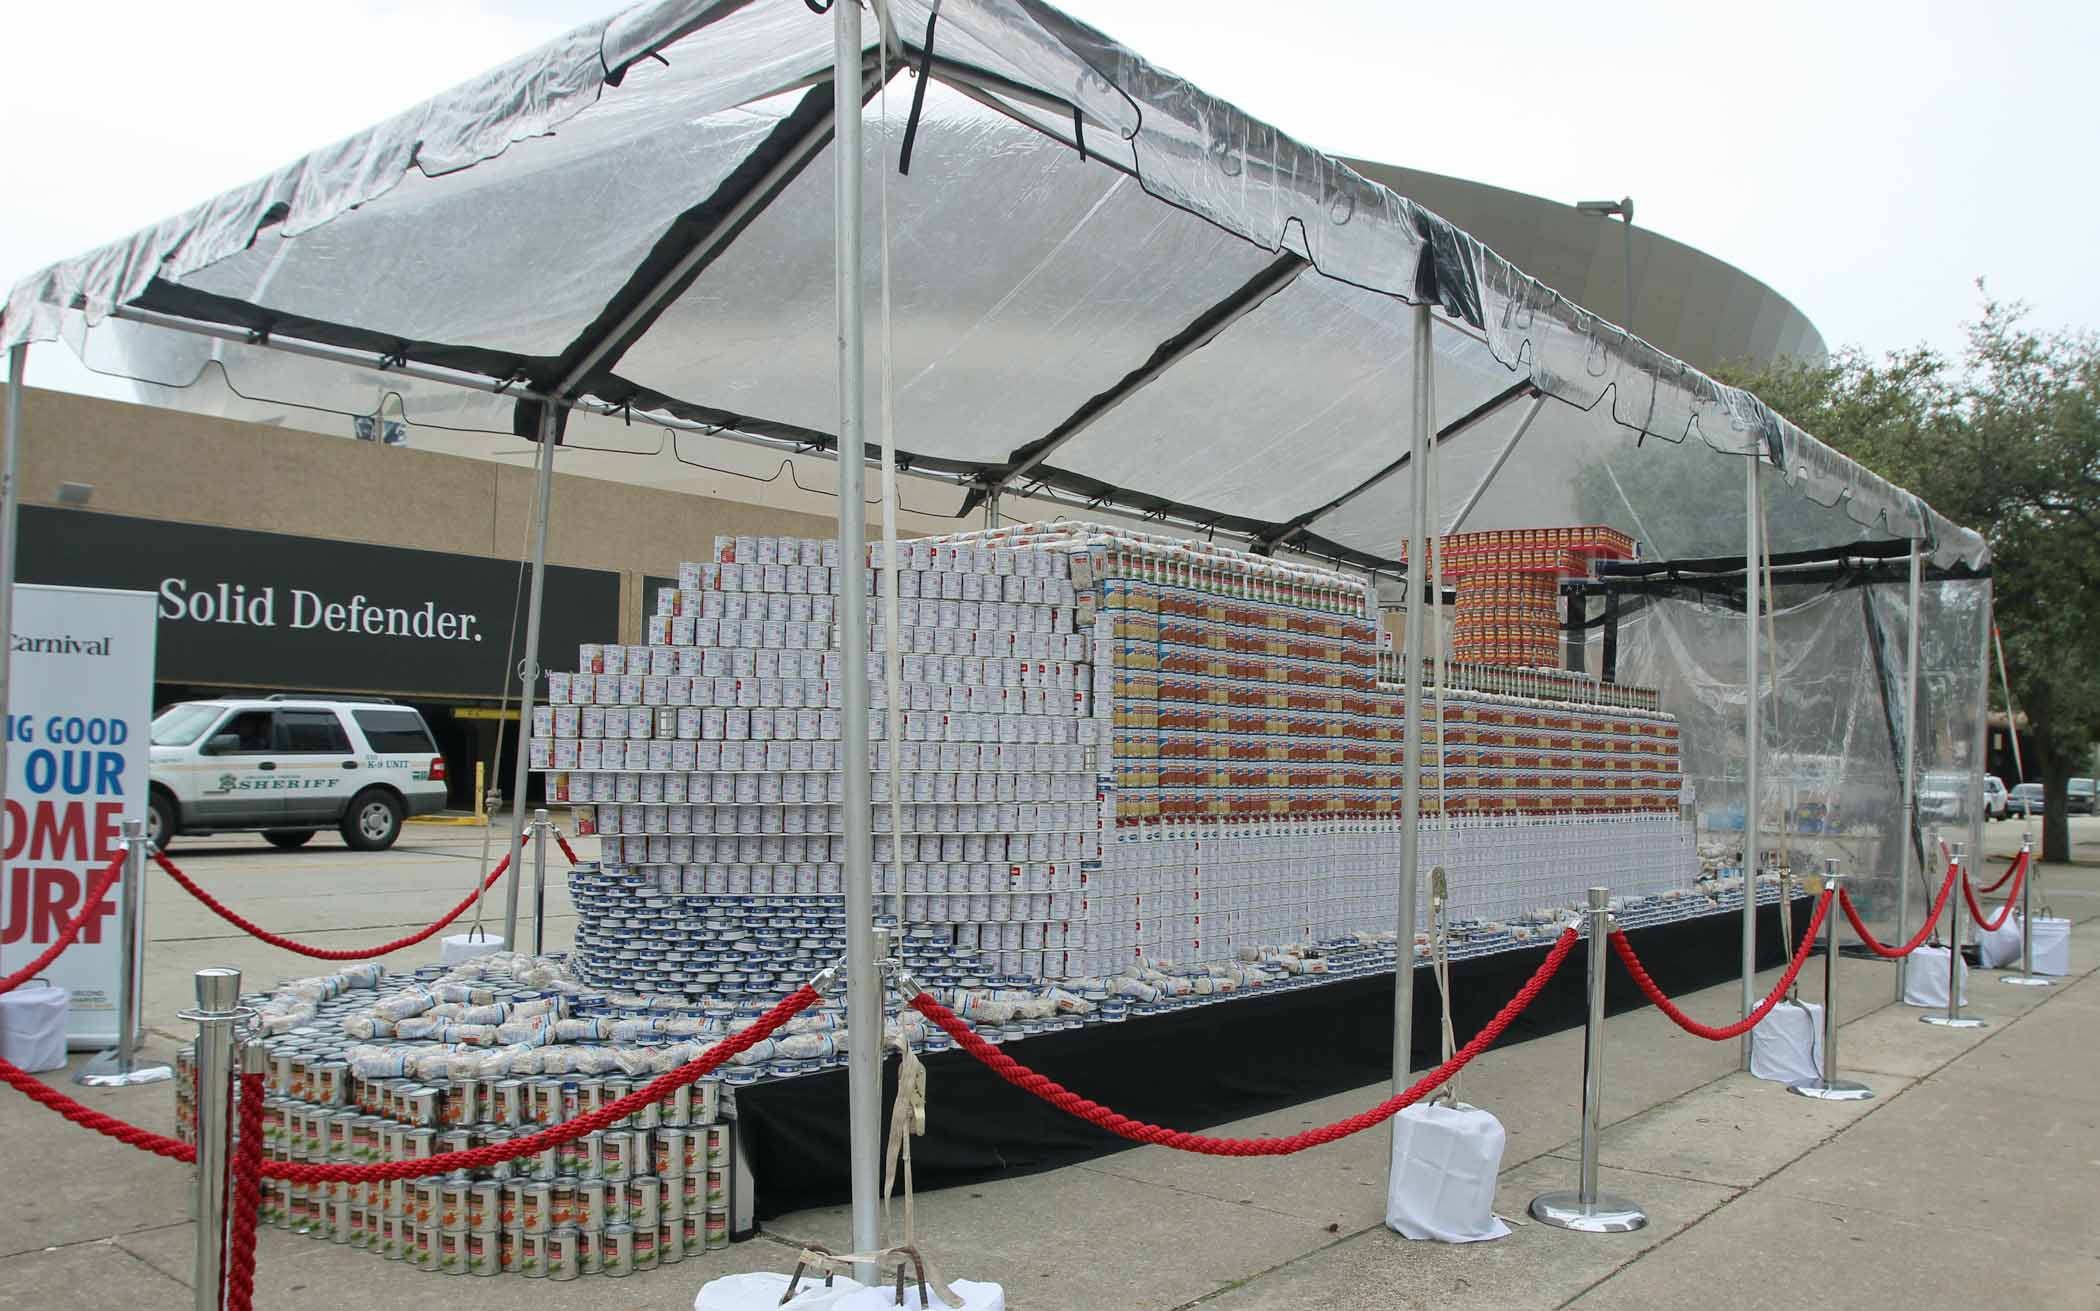 Carnival Cruise Line Builds World's Largest Cruise Ship Made Of Canned Food At Monday's New Orleans Saints Game